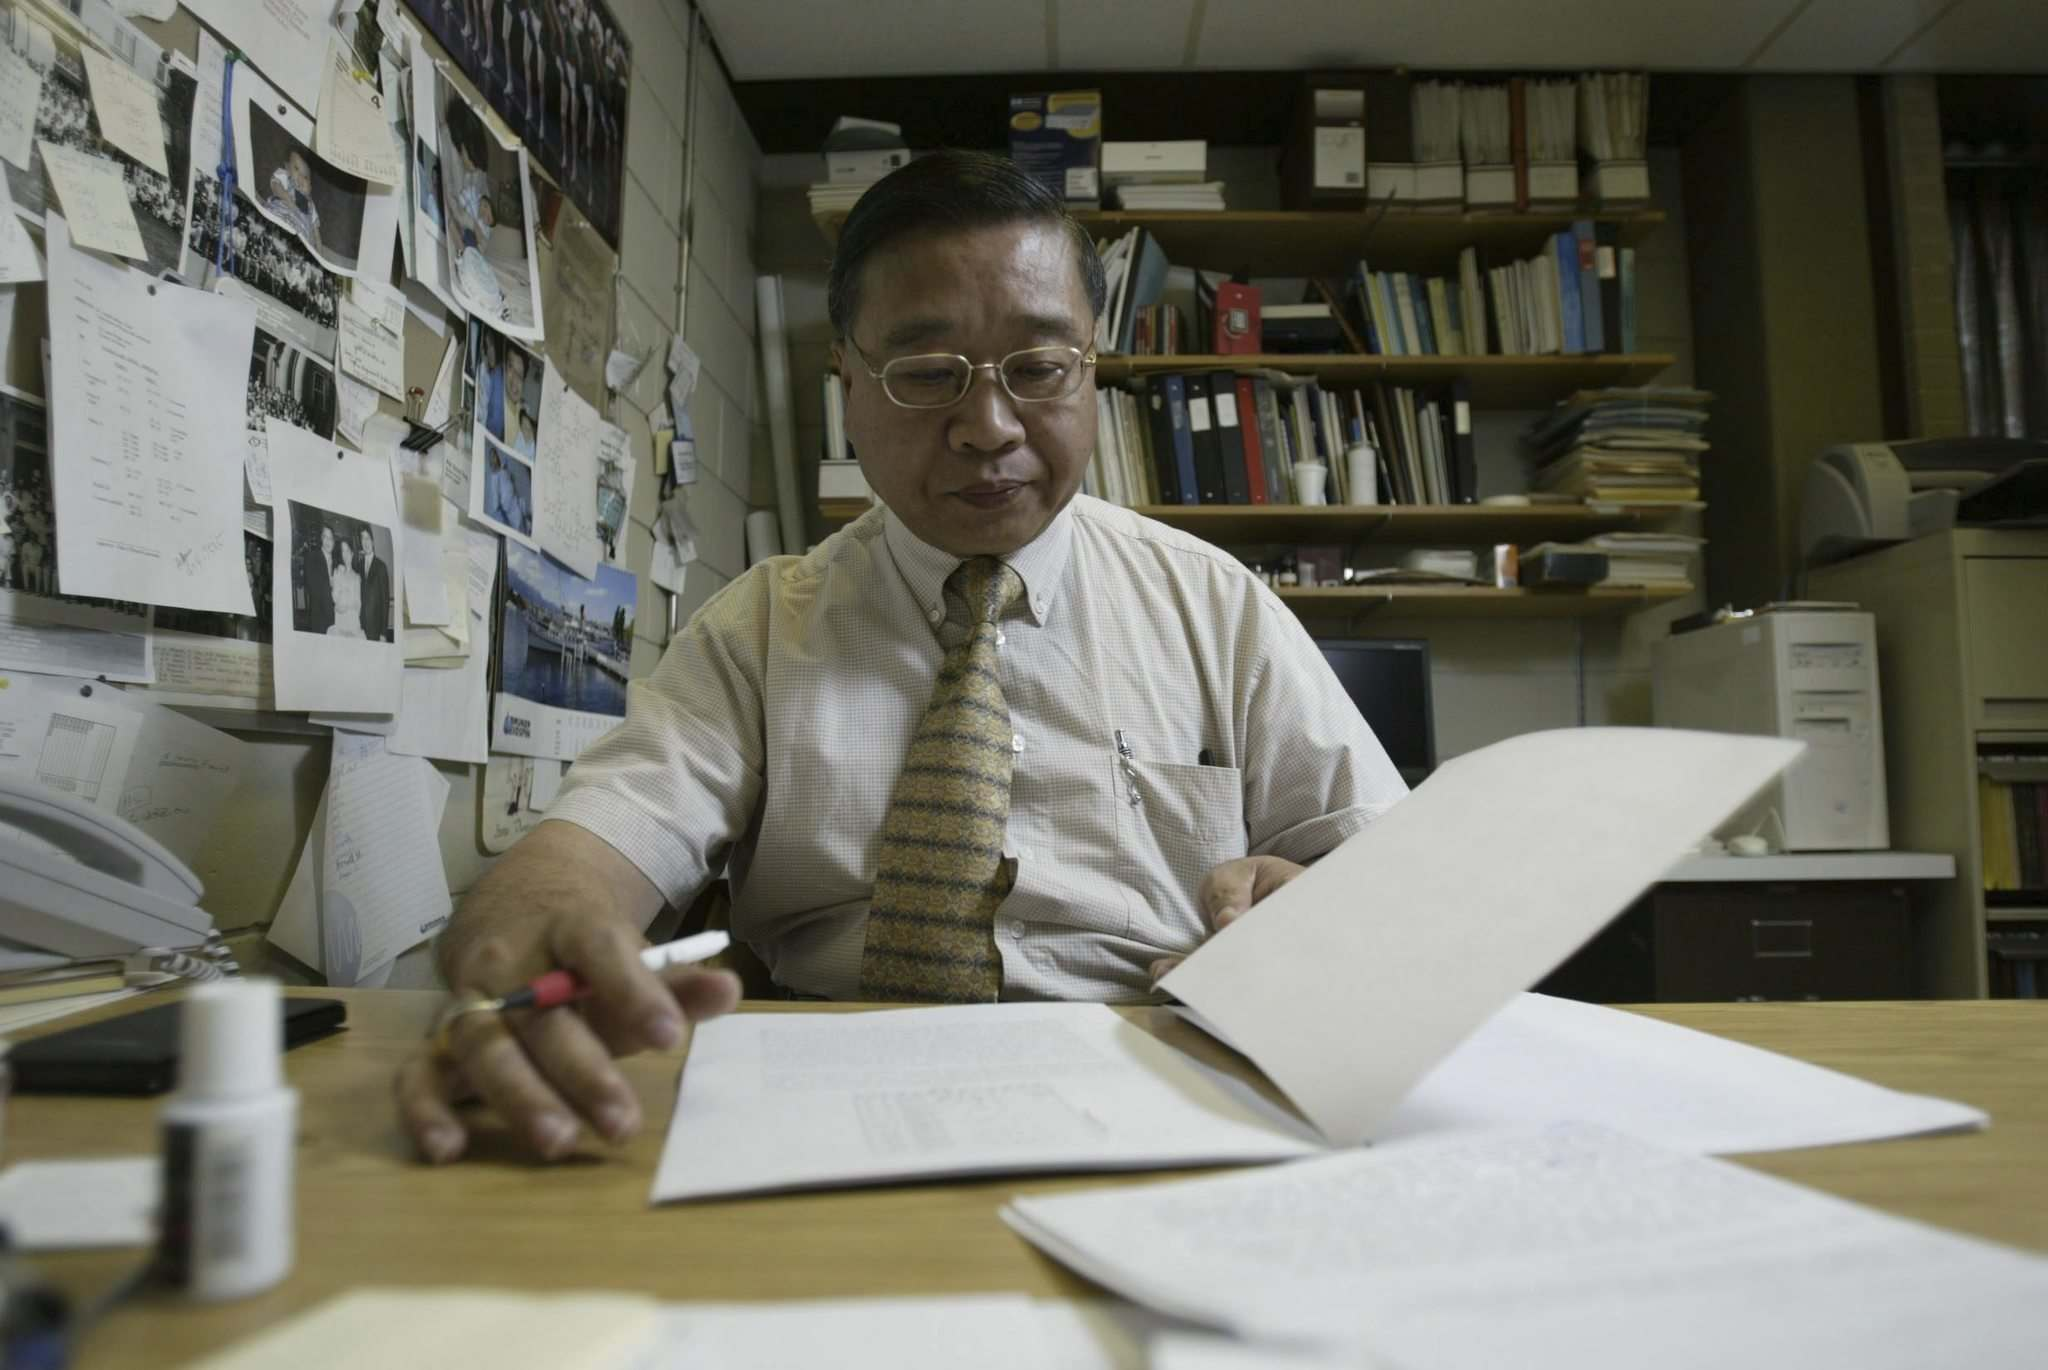 CHRISTOPHER PIKE / BRANDON SUN FILES</p><p>Ronald Dong in his office at Brandon University in 2005. A Free Press reporter who visited the physicist in 1979 was told of the potential for liquid crystal technology.</p>